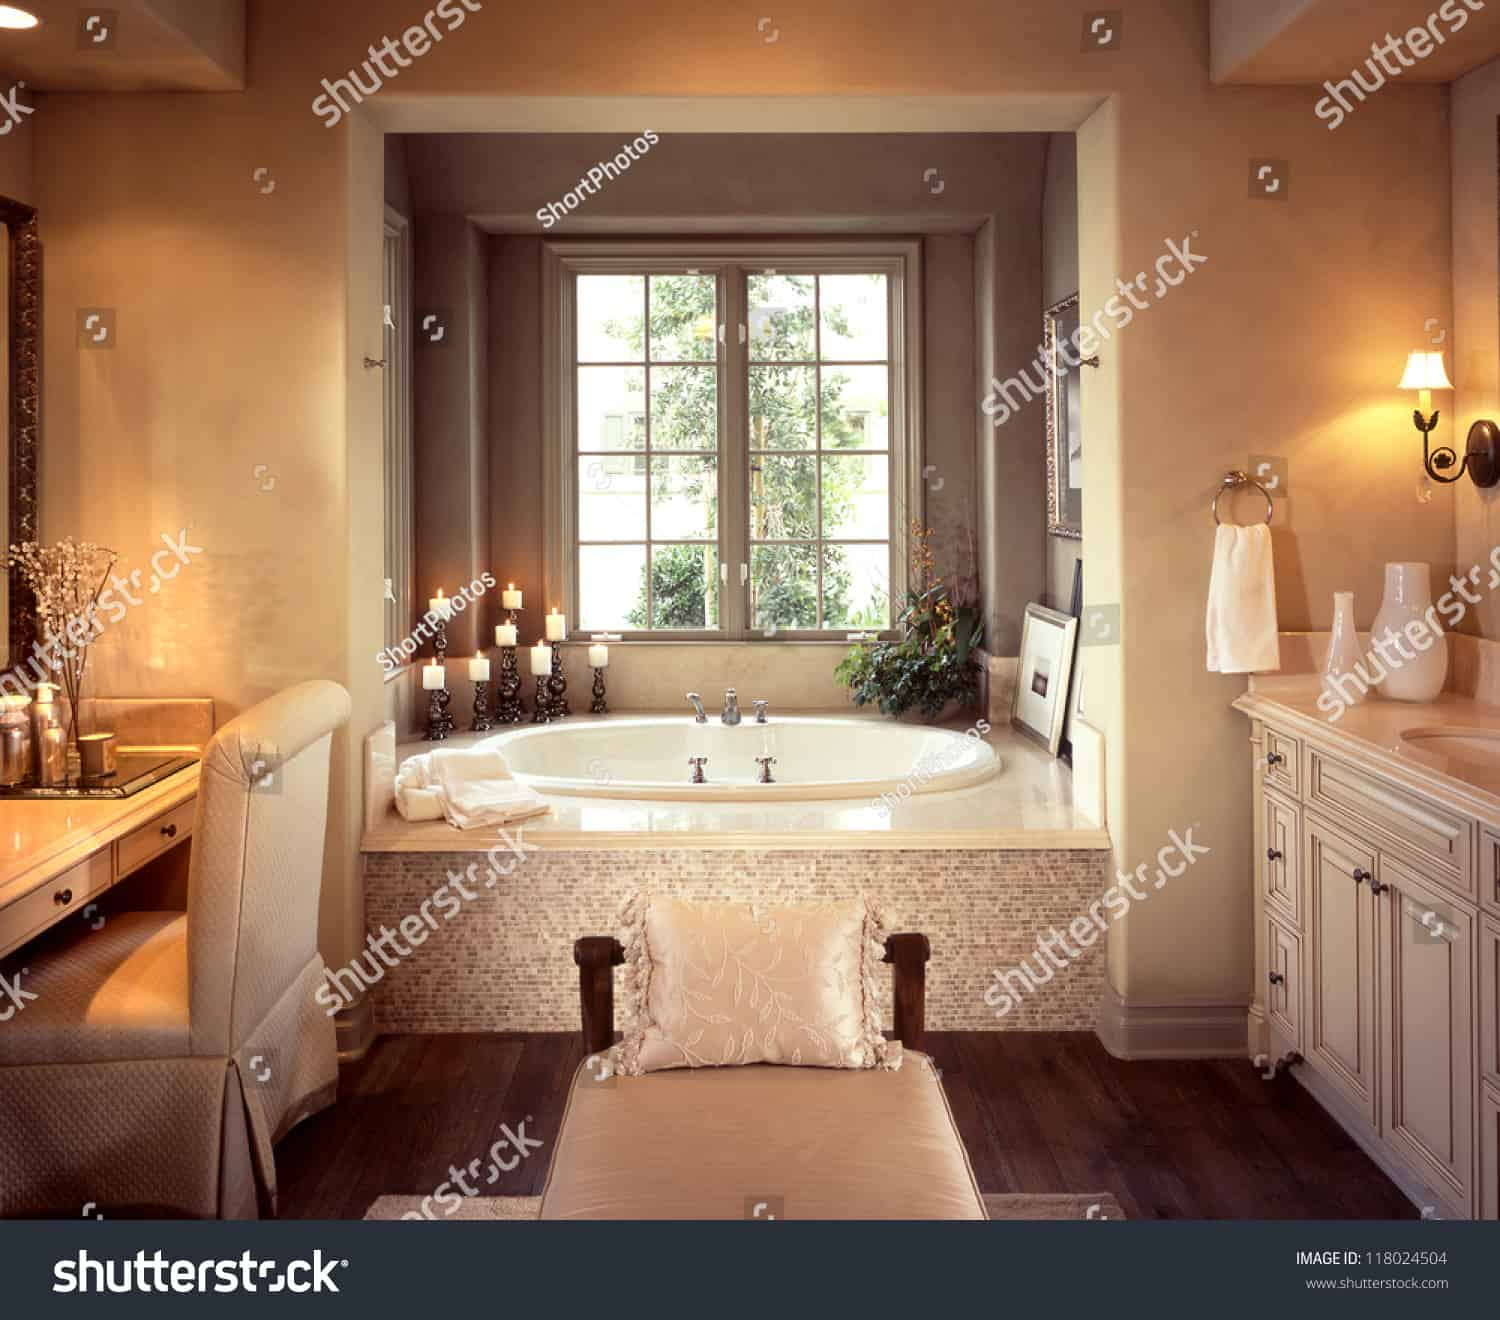 stock photo bathroom interior architecture stock images photos of living room dining room bathroom kitchen 118024504